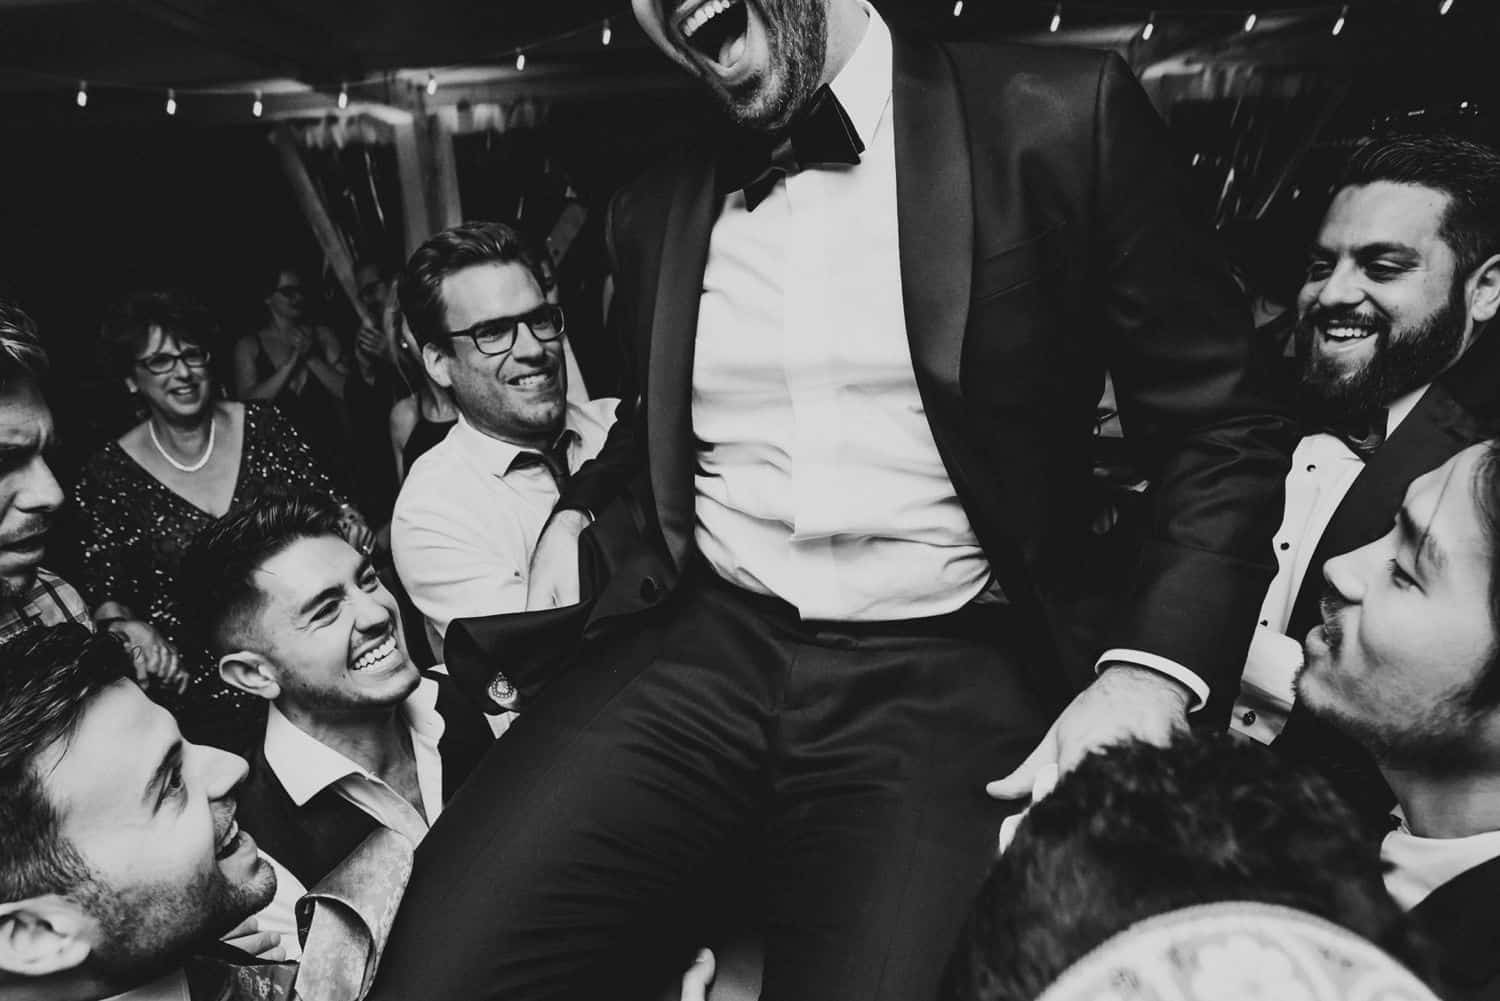 Photography Trends: Dancing the Hora in Black and White